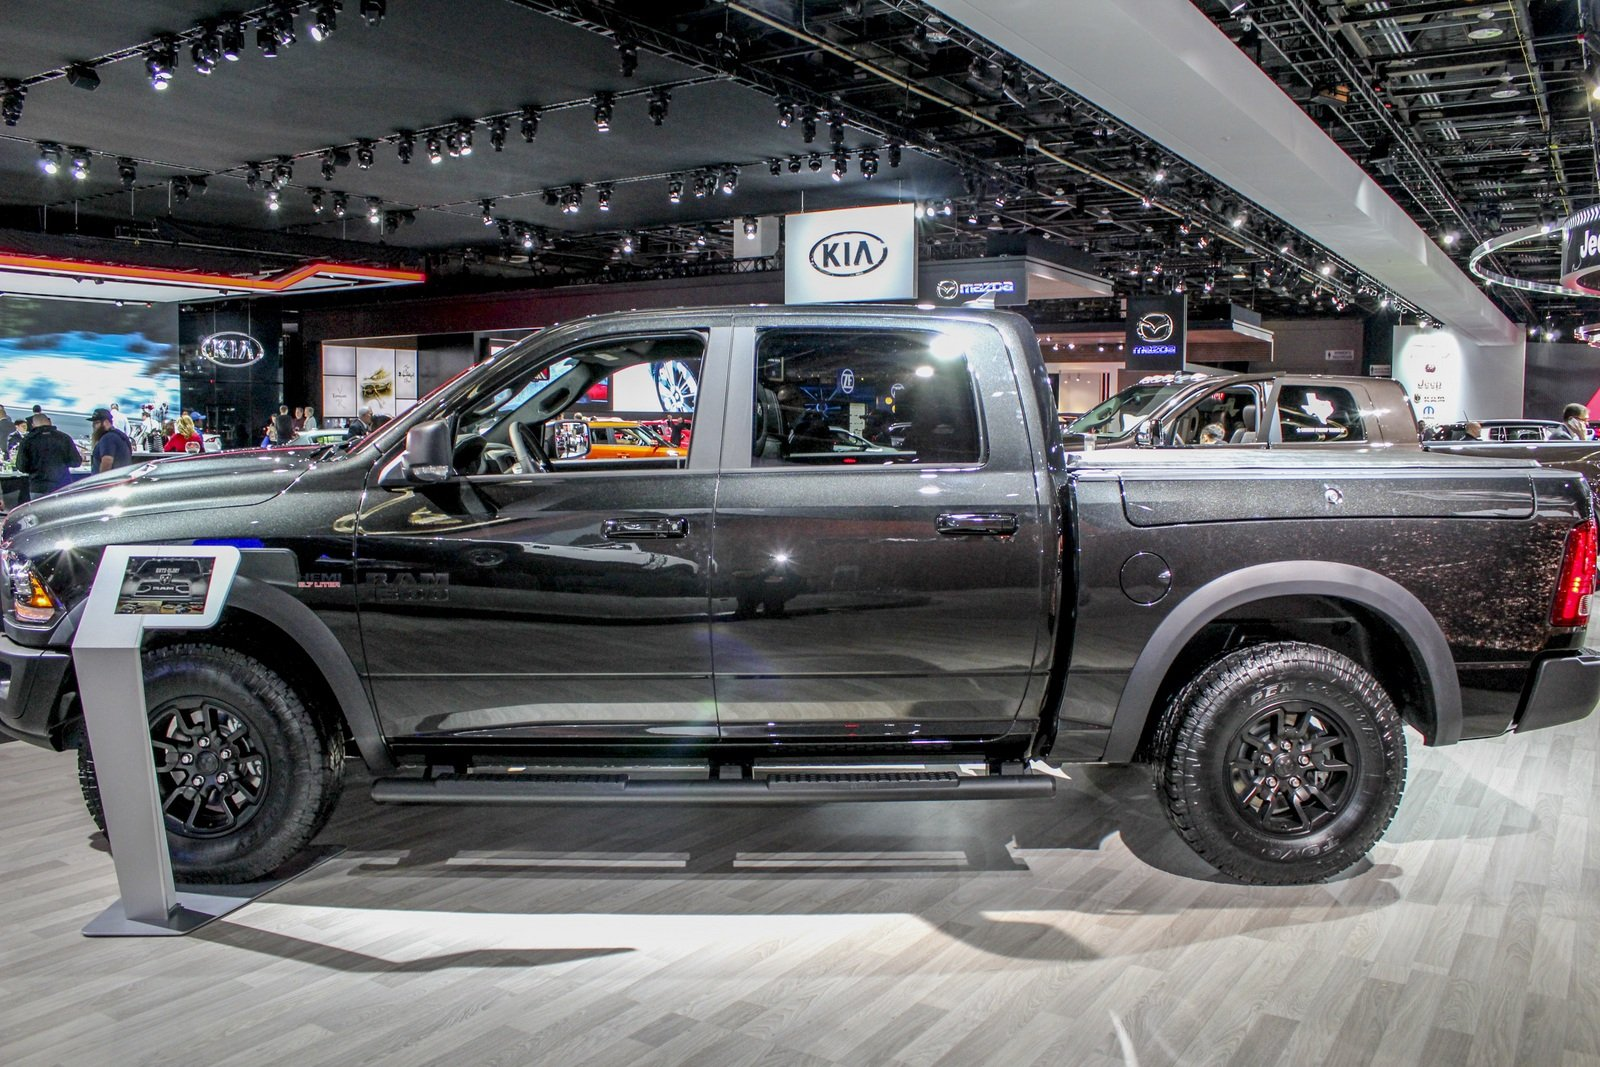 2017 Ram 1500 Rebel Black Edition - Picture 703115 | truck review ...